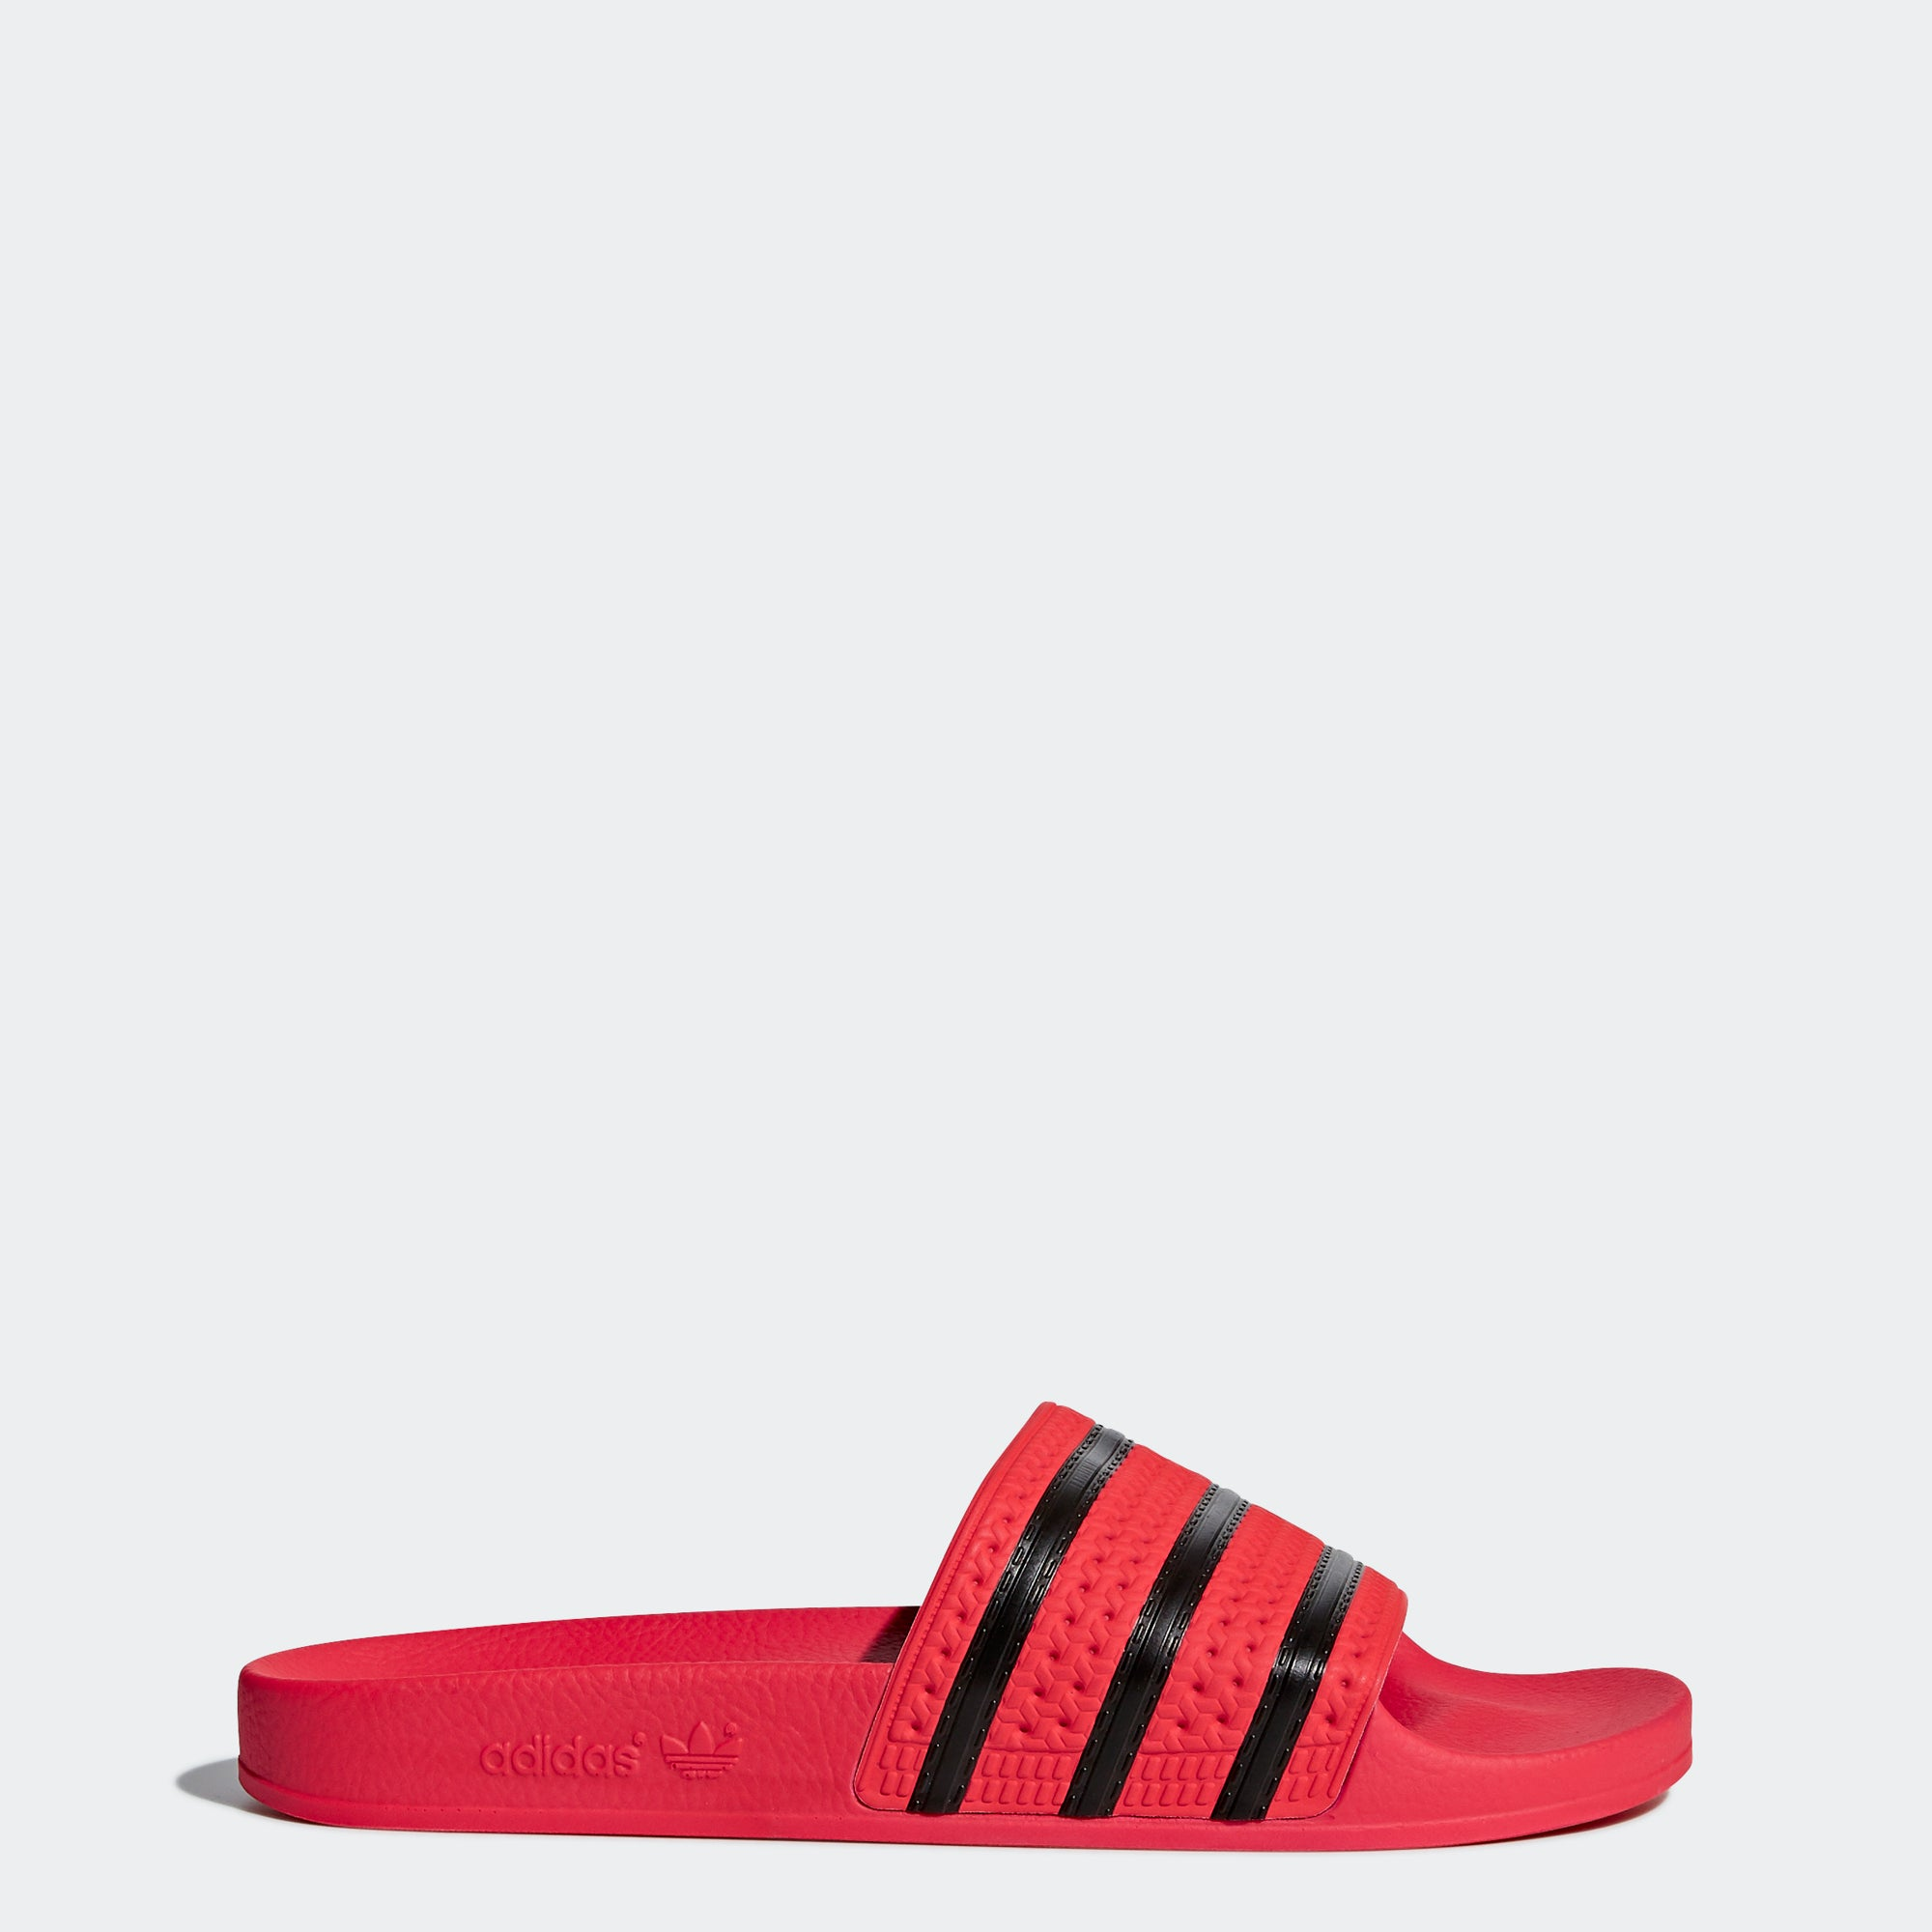 0a77a2428 Men s adidas Originals adilette Slides Real Coral Red – Chicago City ...